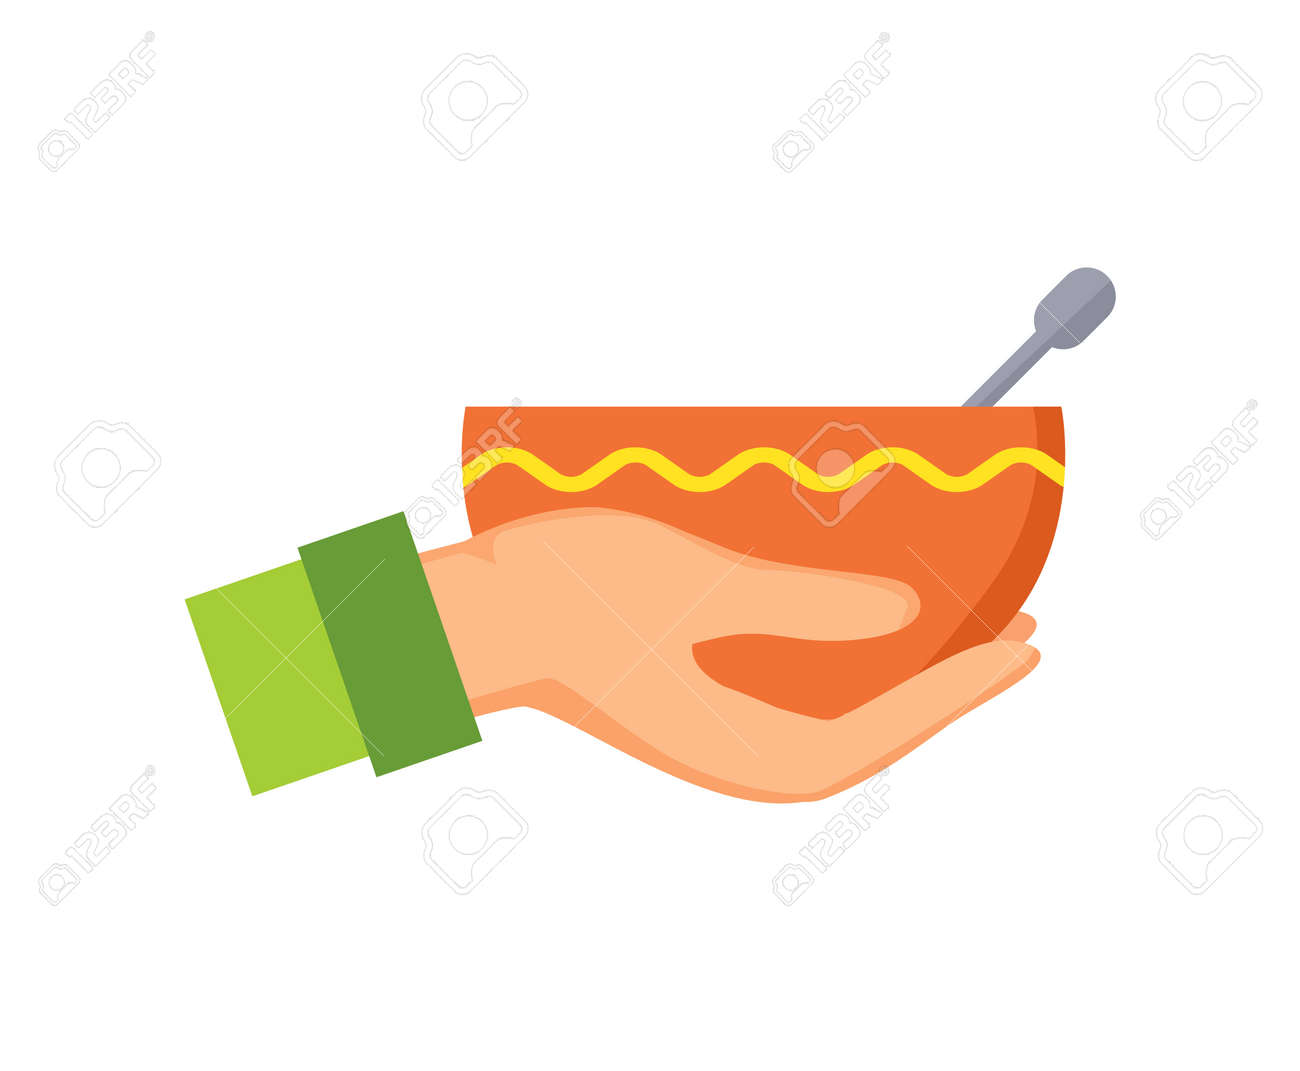 Hand holding bowl with ornament made of yellow line, plate and metal object in it, male arm icon wearing green clothes isolated on vector illustration - 107444031